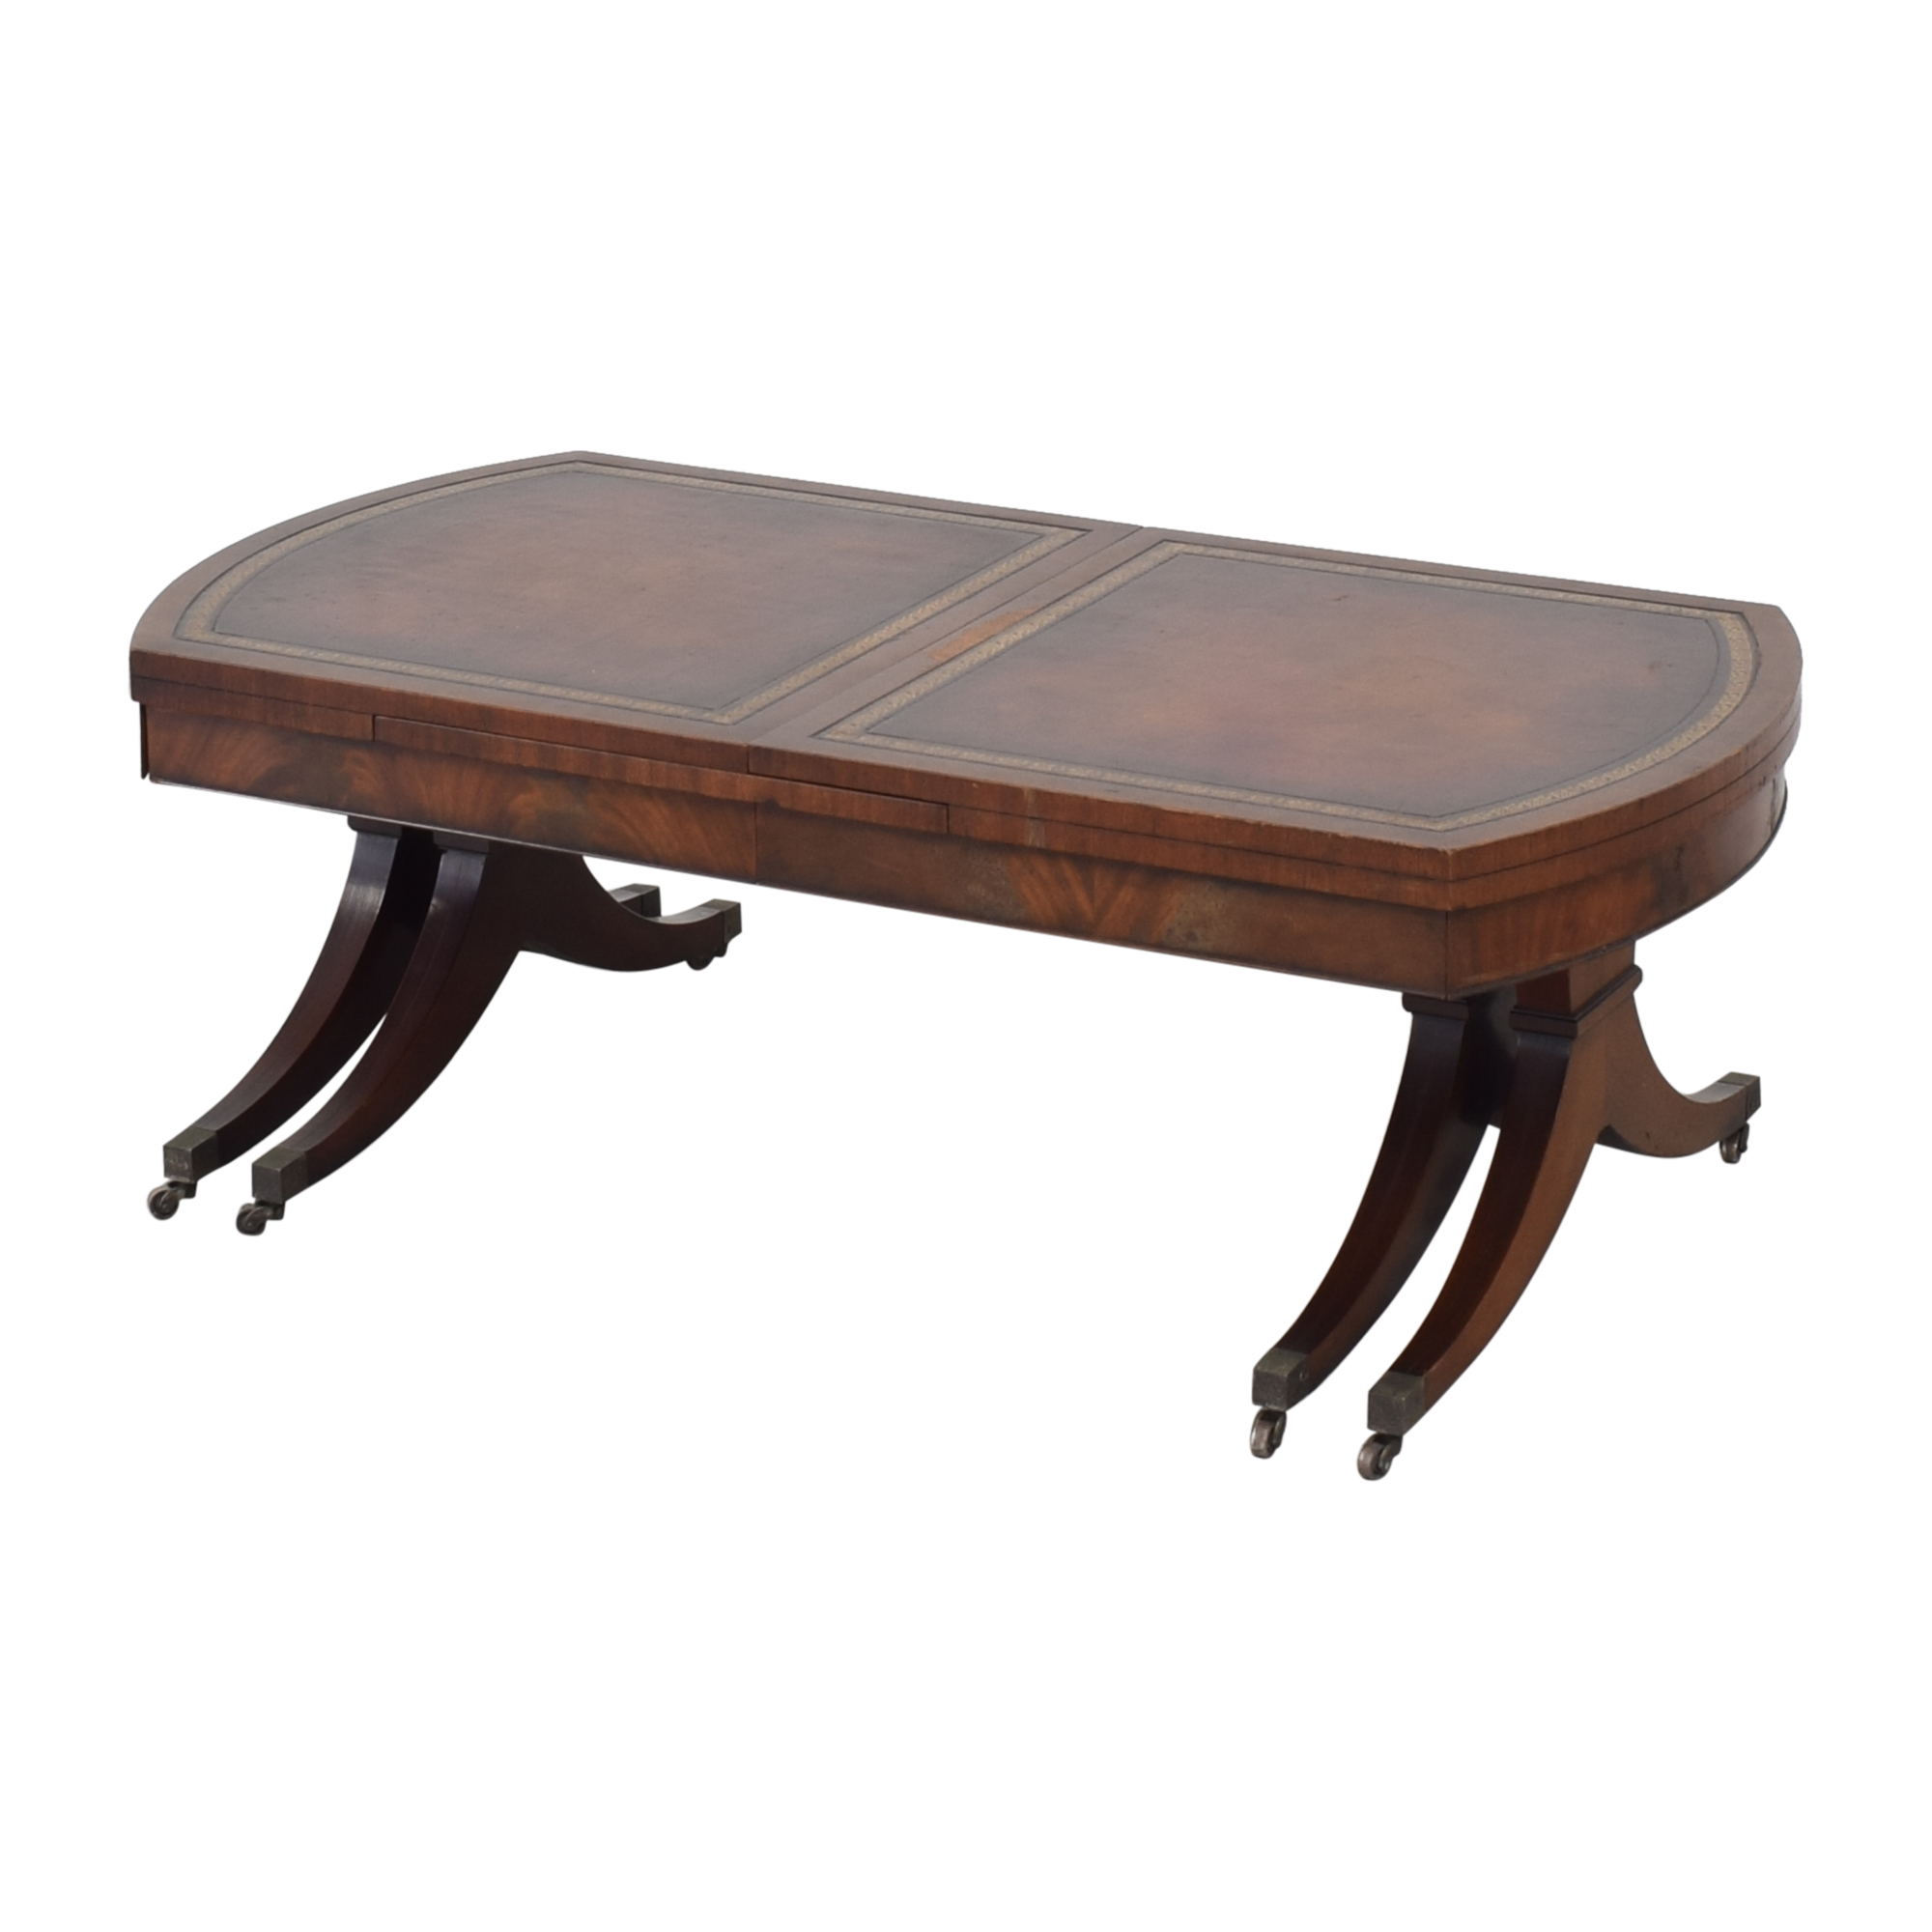 Heirloom Weiman Extendable Coffee Table sale